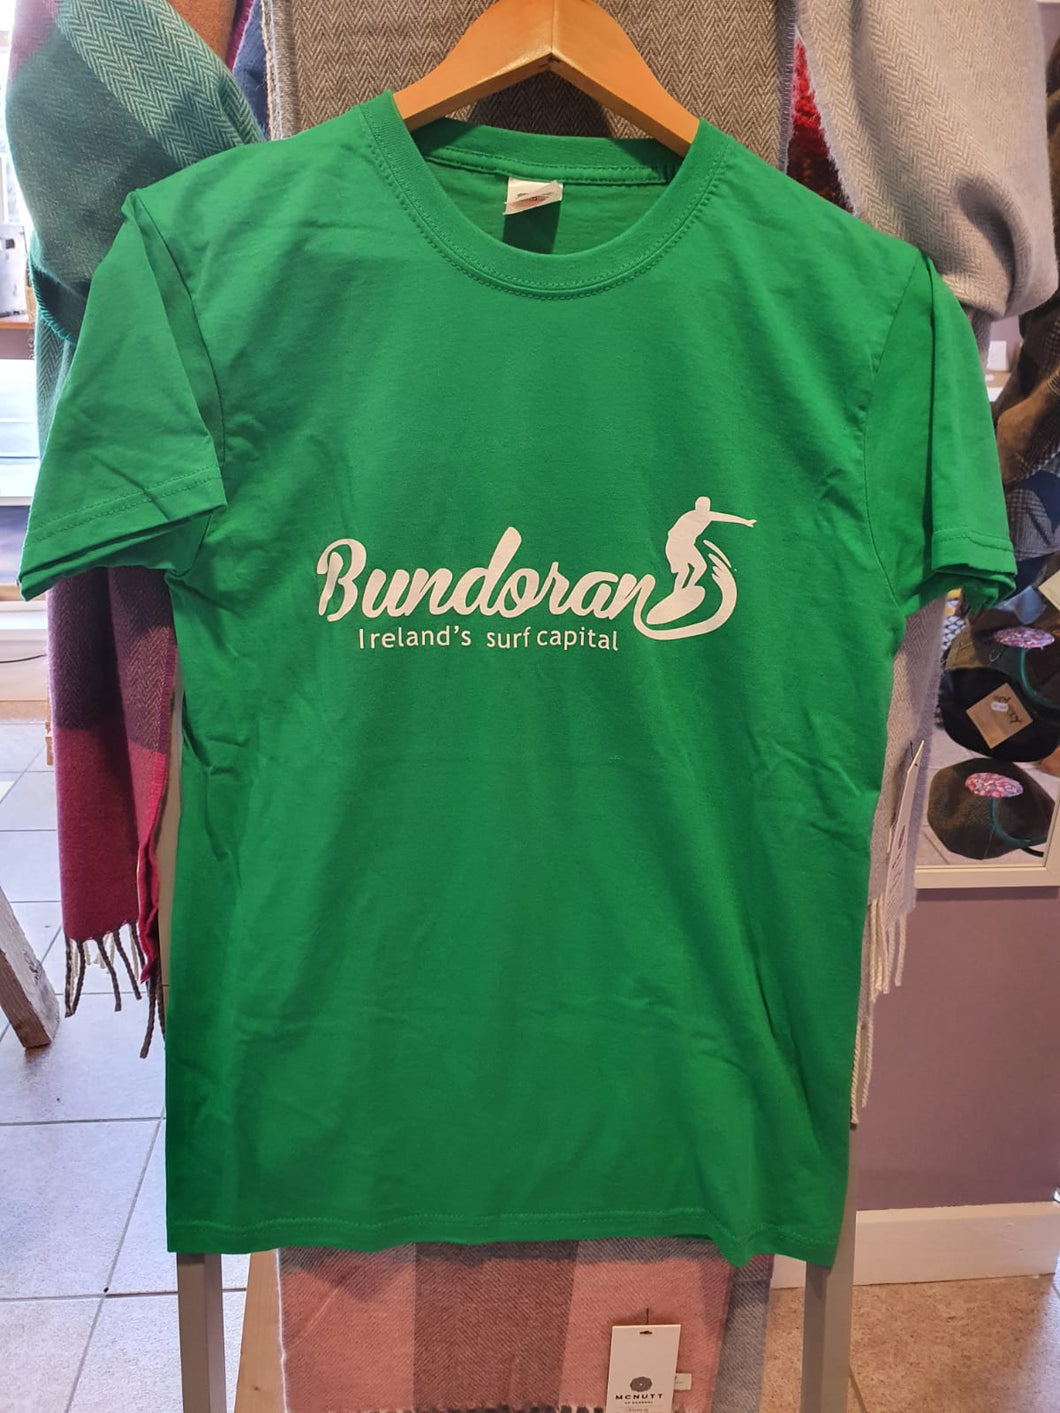 Bundoran T-Shirt 'Irelands Surf Capital' (Green)